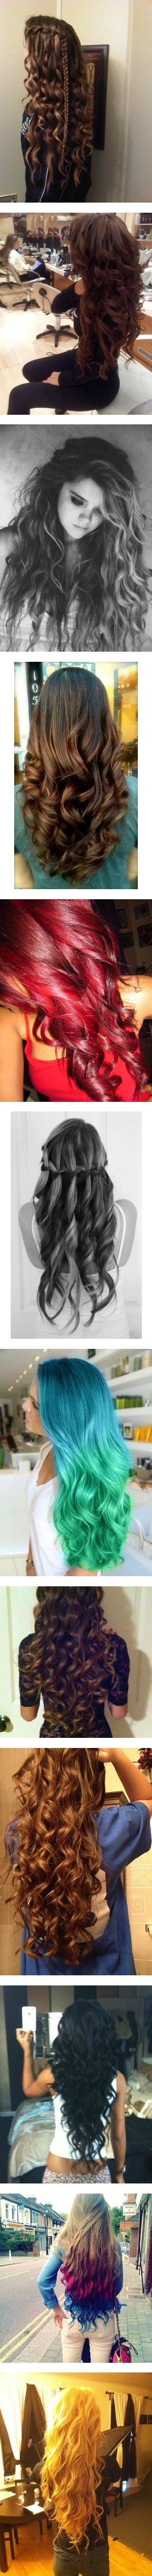 """Curly/Wavy Hair that I love 3"" by amyfashion on Polyvore"